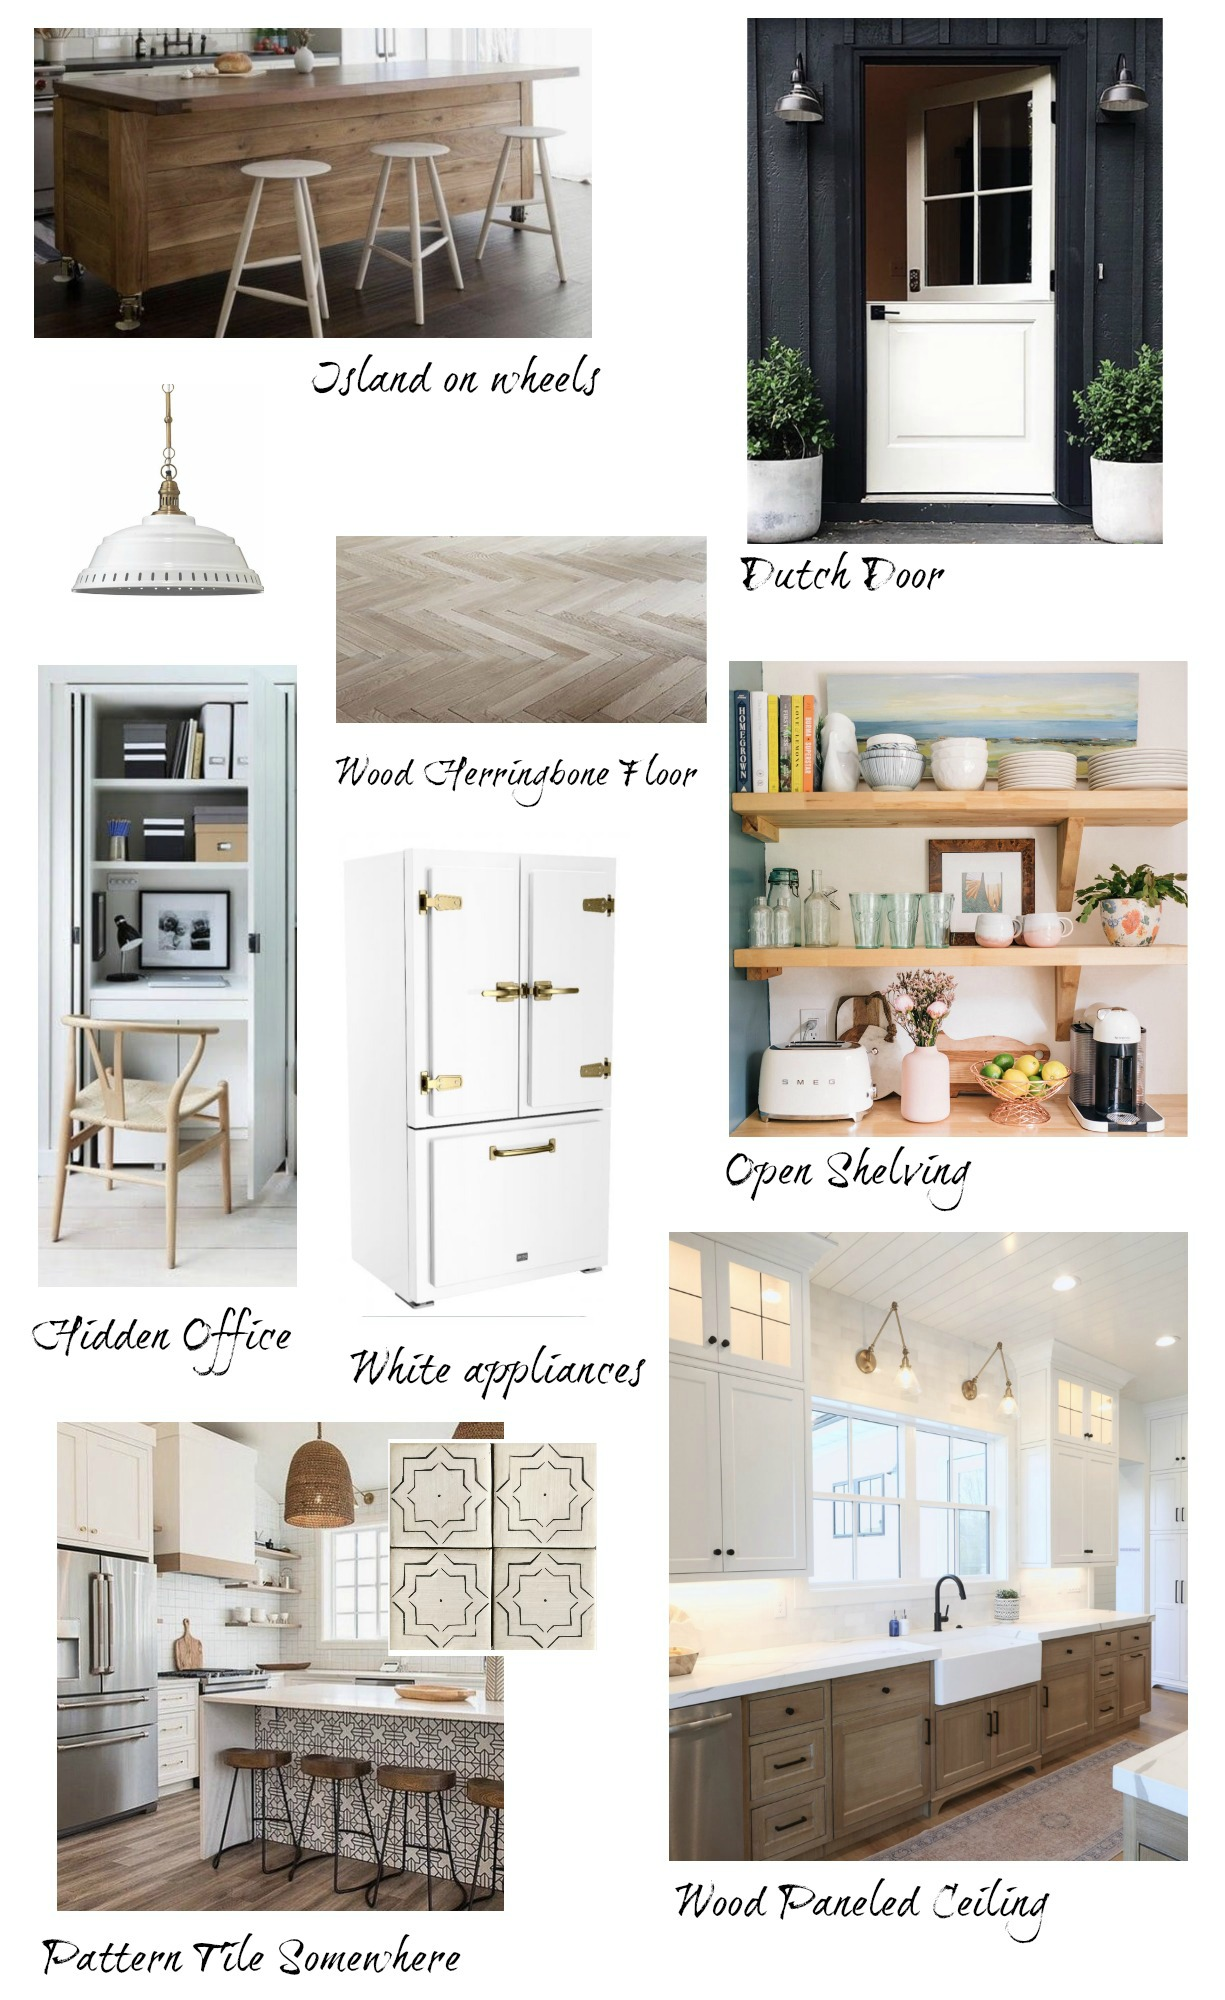 My Major Kitchen And Bathroom Design Inspiration Remodel Nesting With Grace